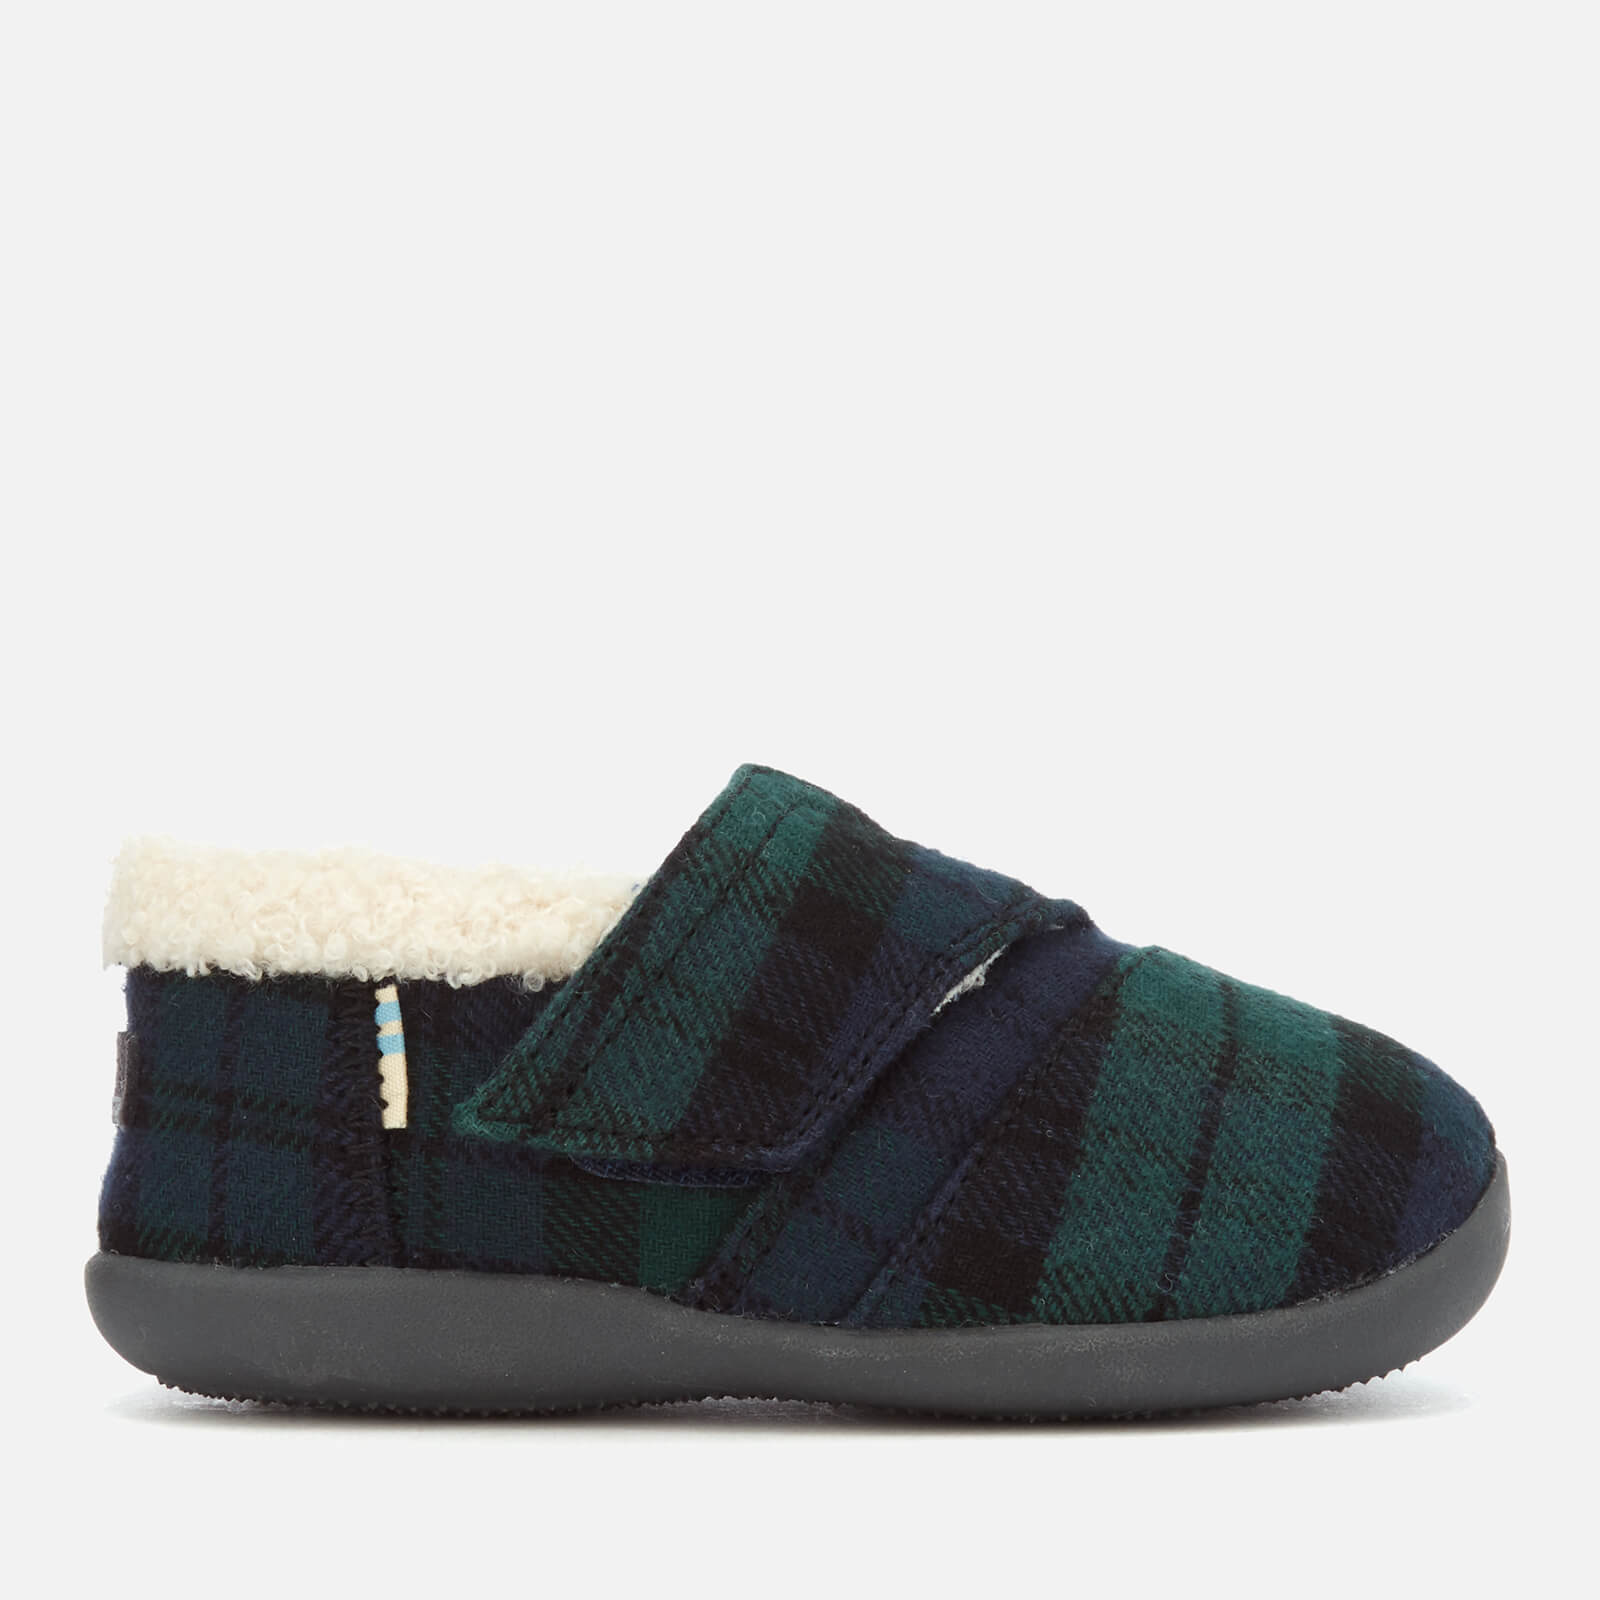 f18515525b9 TOMS Toddlers  Plaid Felt Slippers - Spruce Junior Clothing